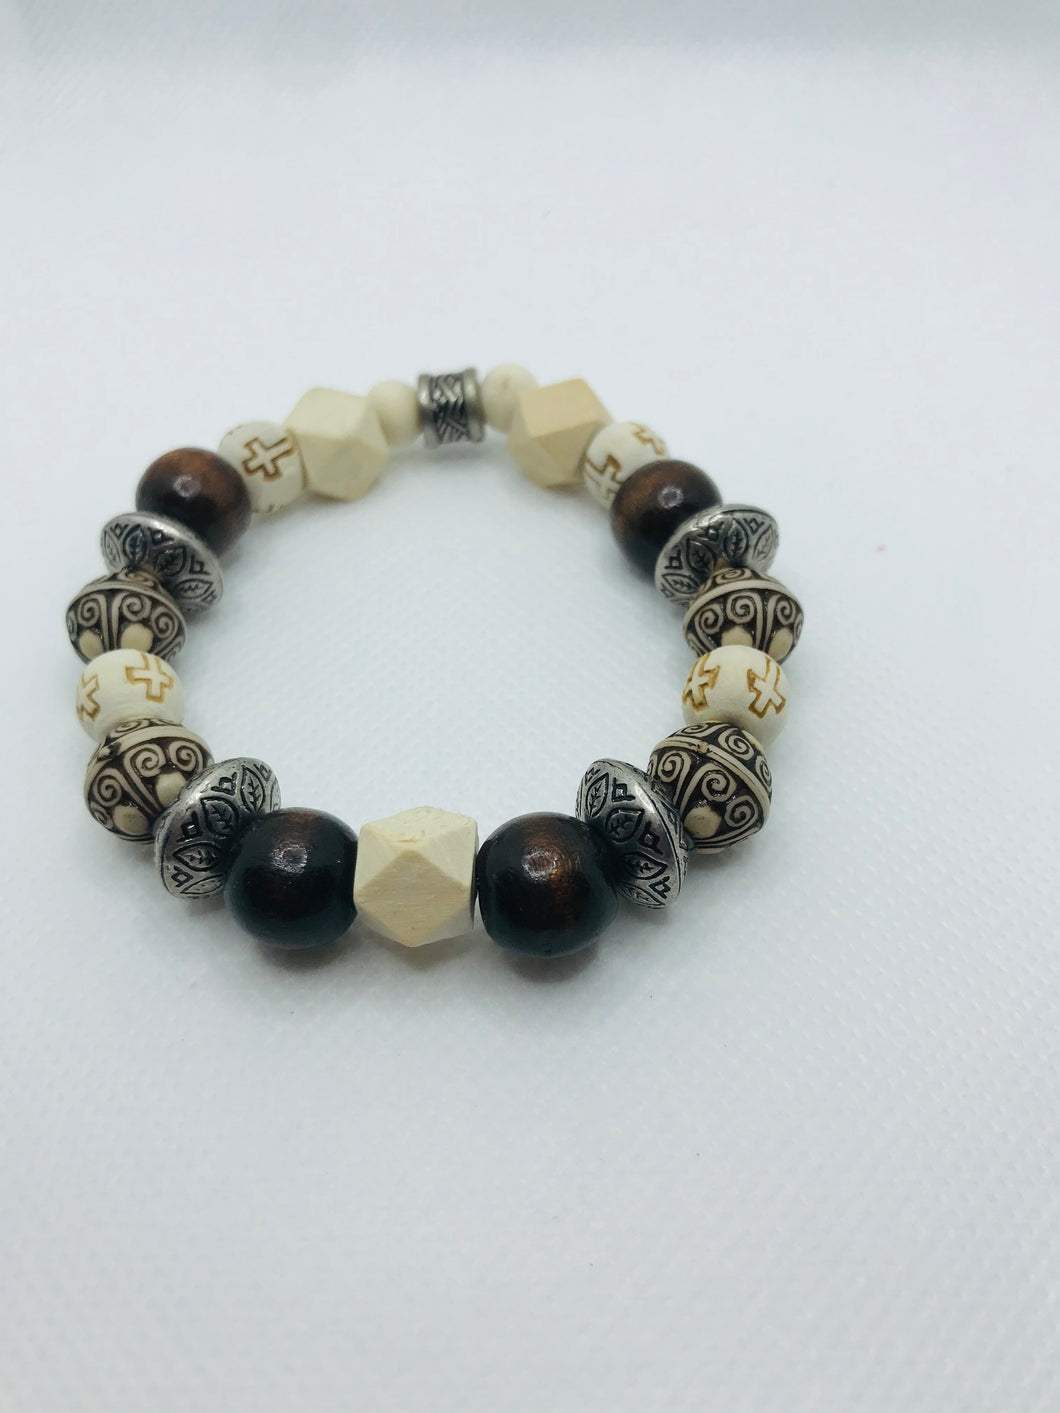 The David Wood Bead Stretch Bracelet